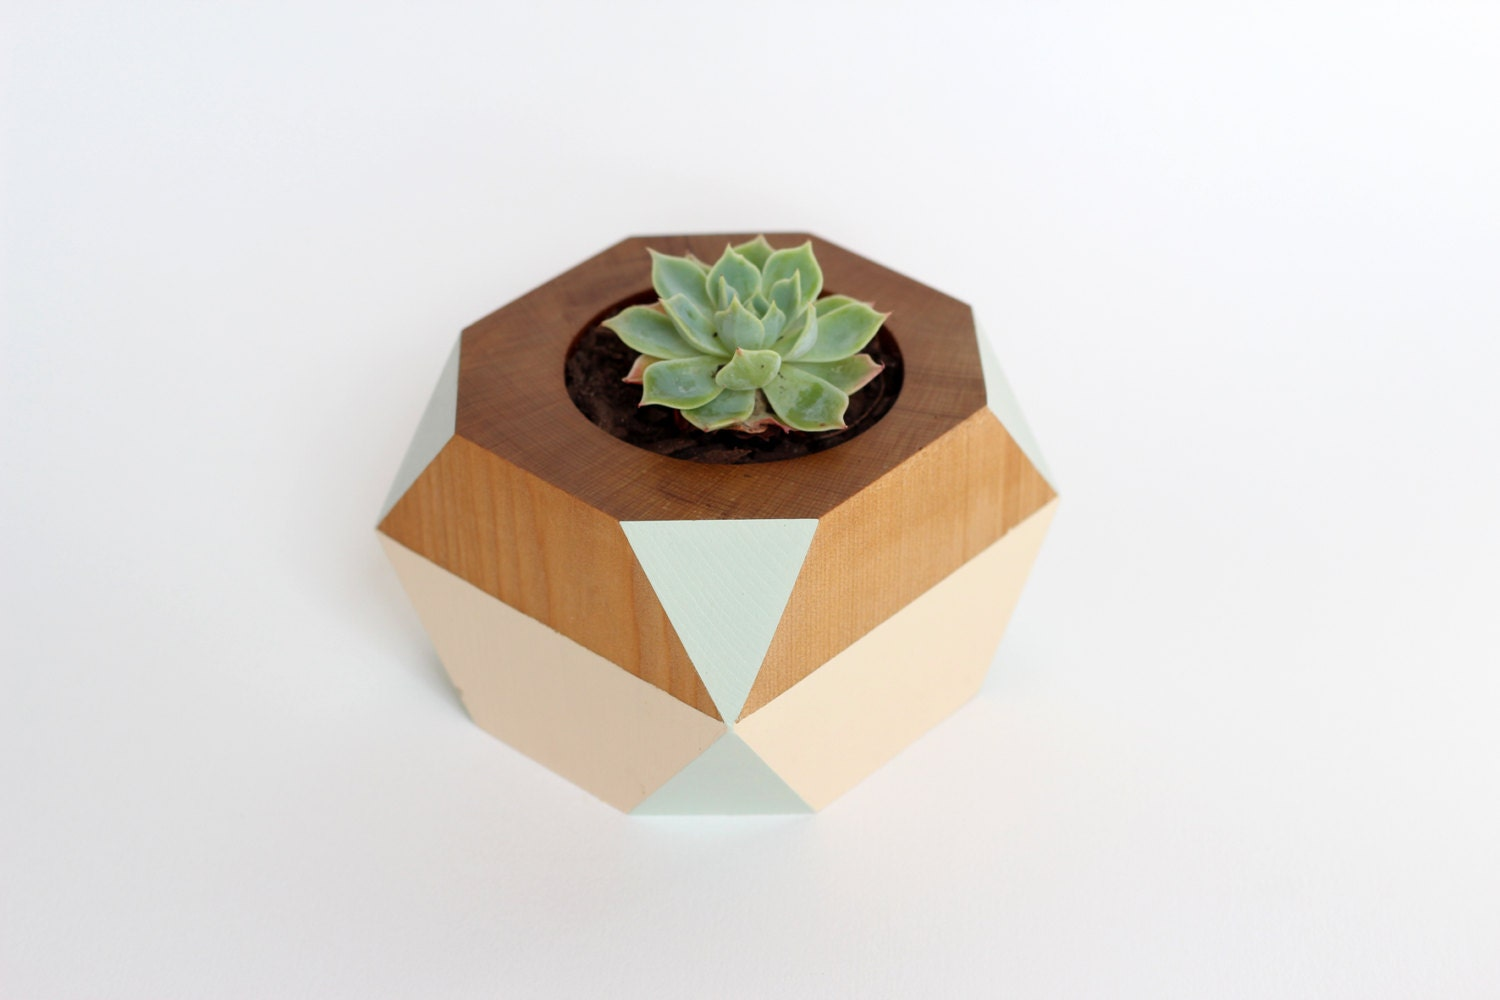 Geometric Wooden Pot - LittleLambCraft